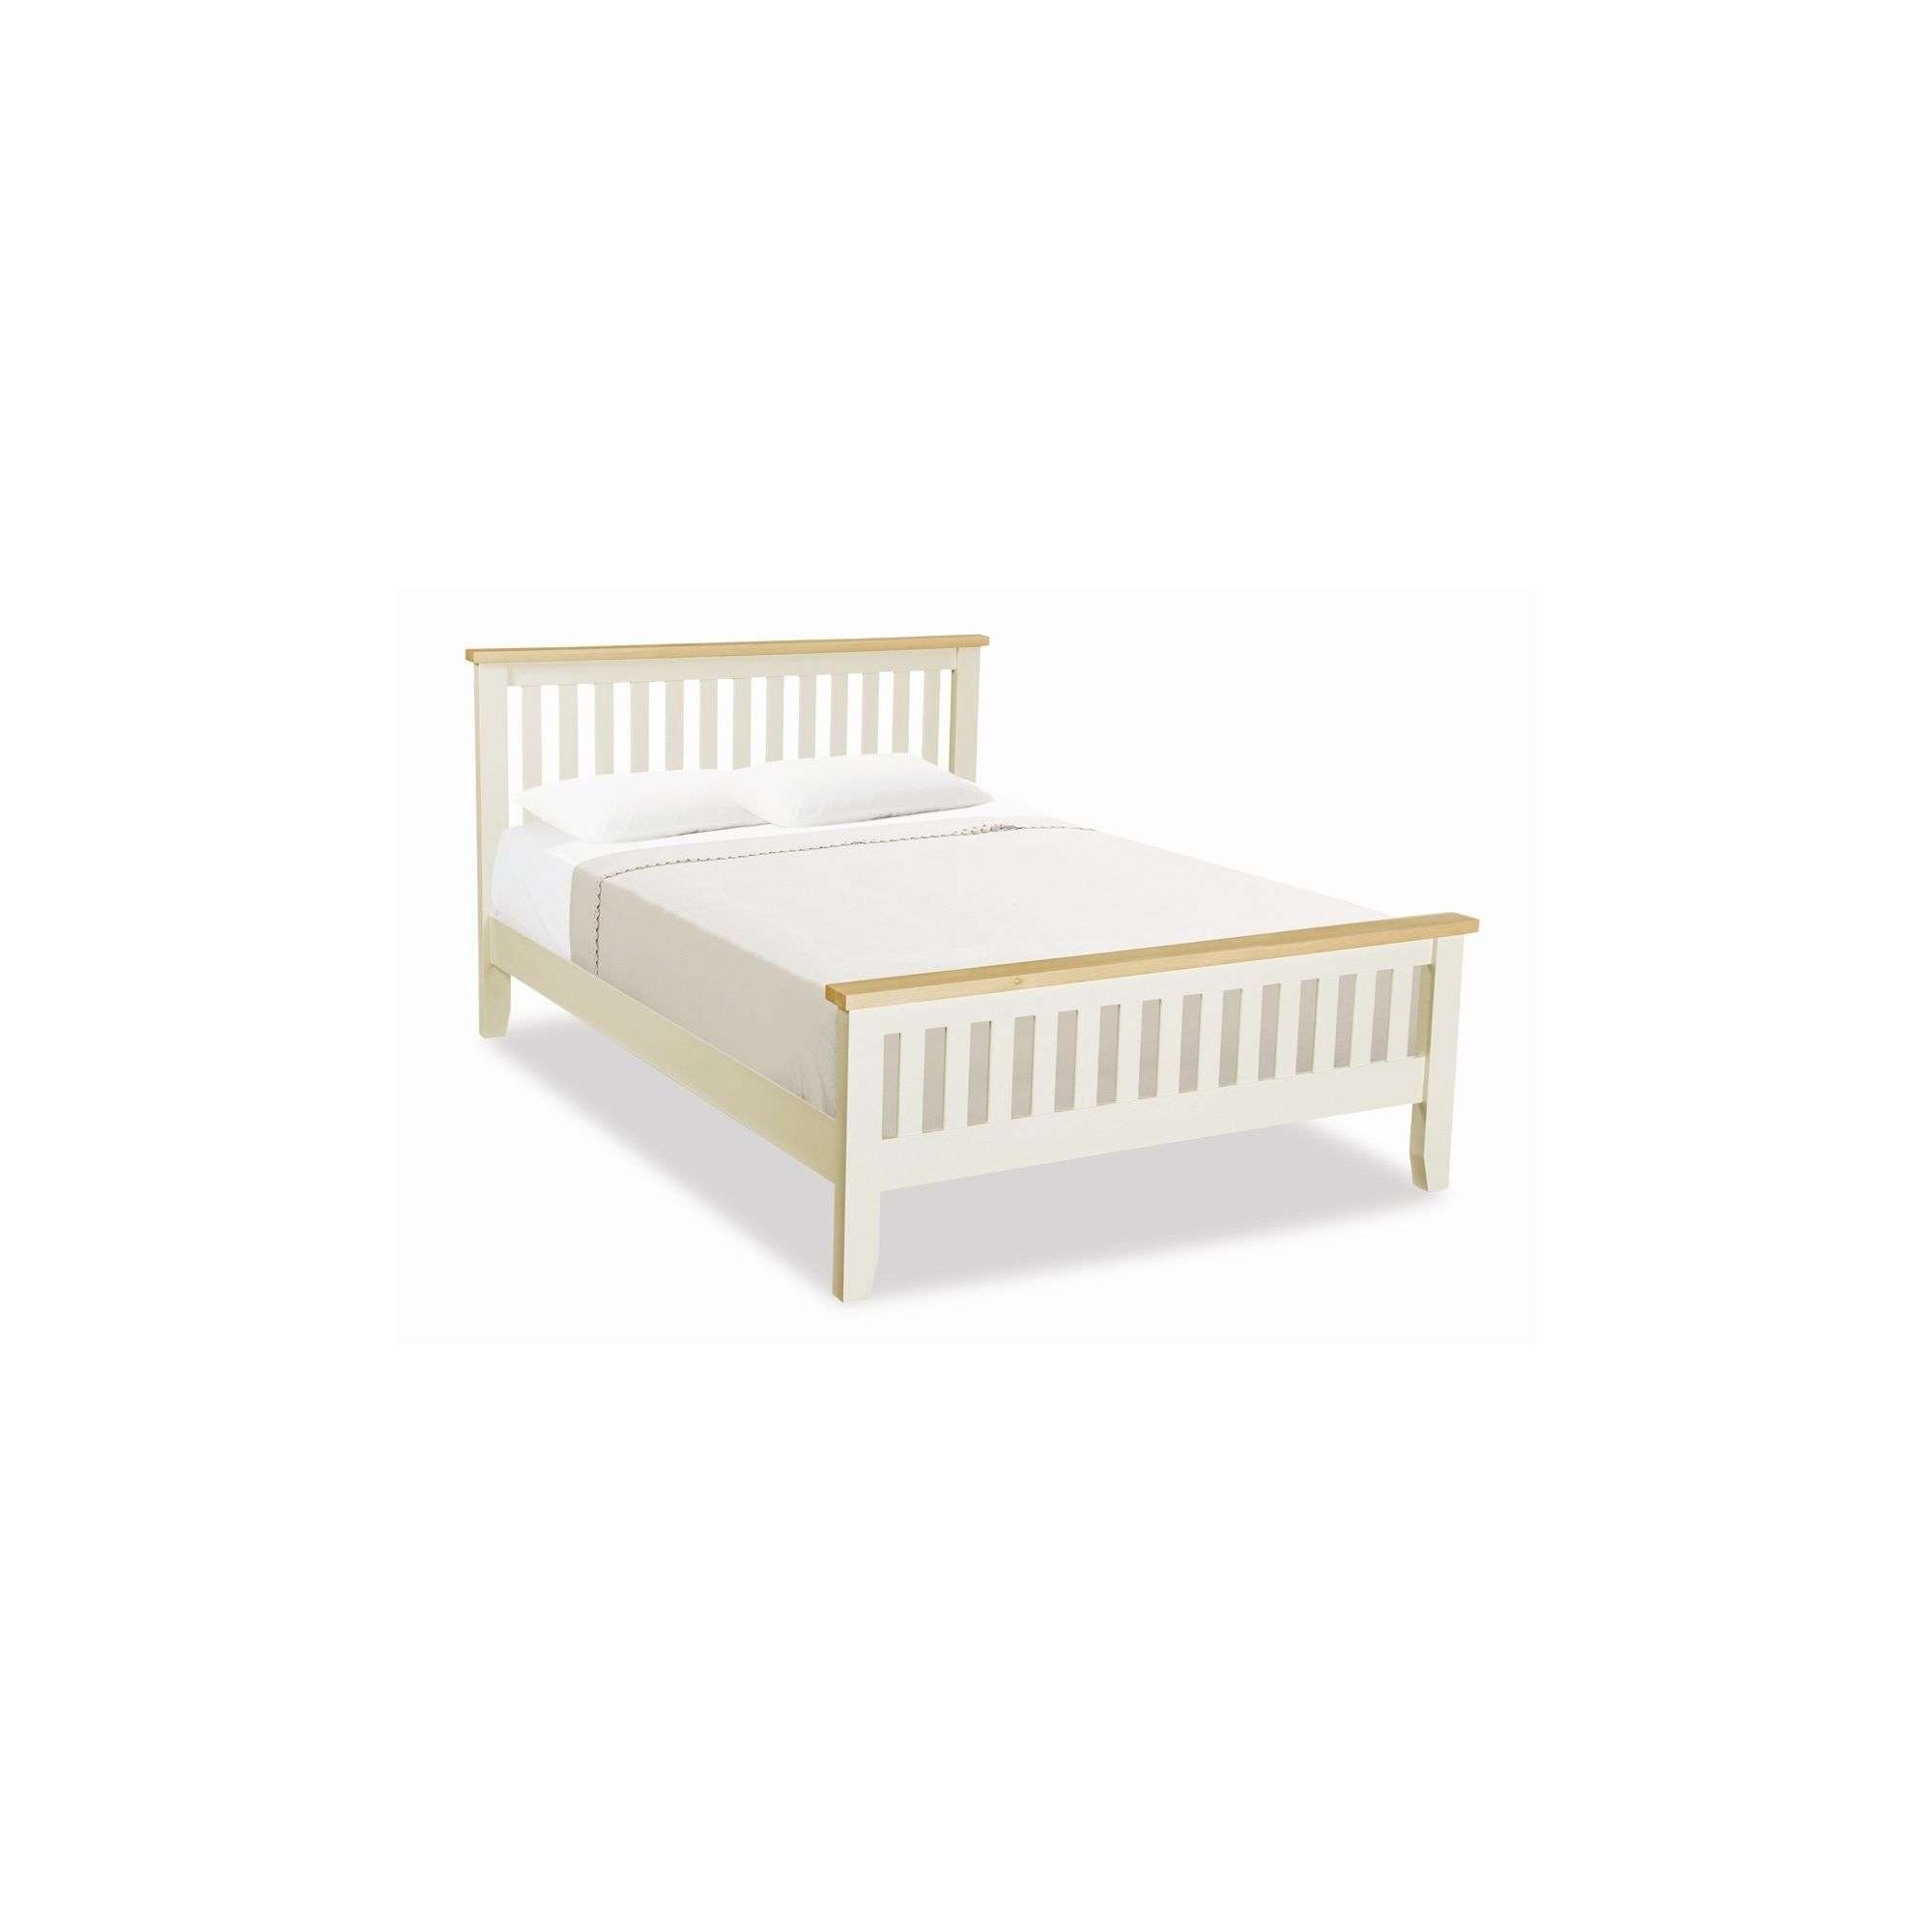 Alterton Furniture St. Ives King Size Bed at Tescos Direct